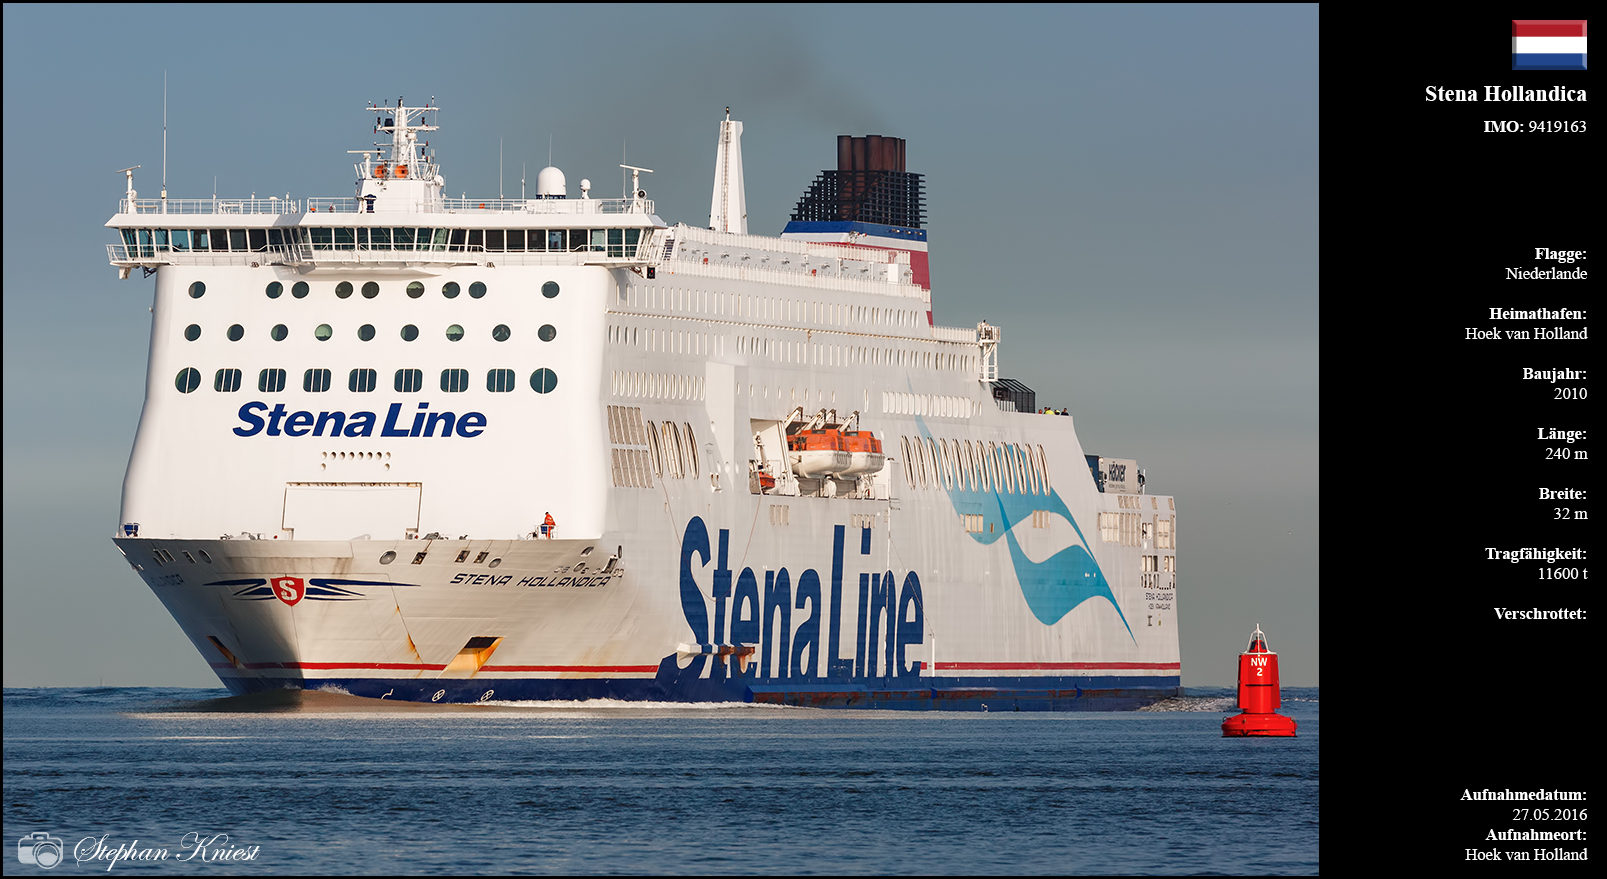 Stena-Hollandica